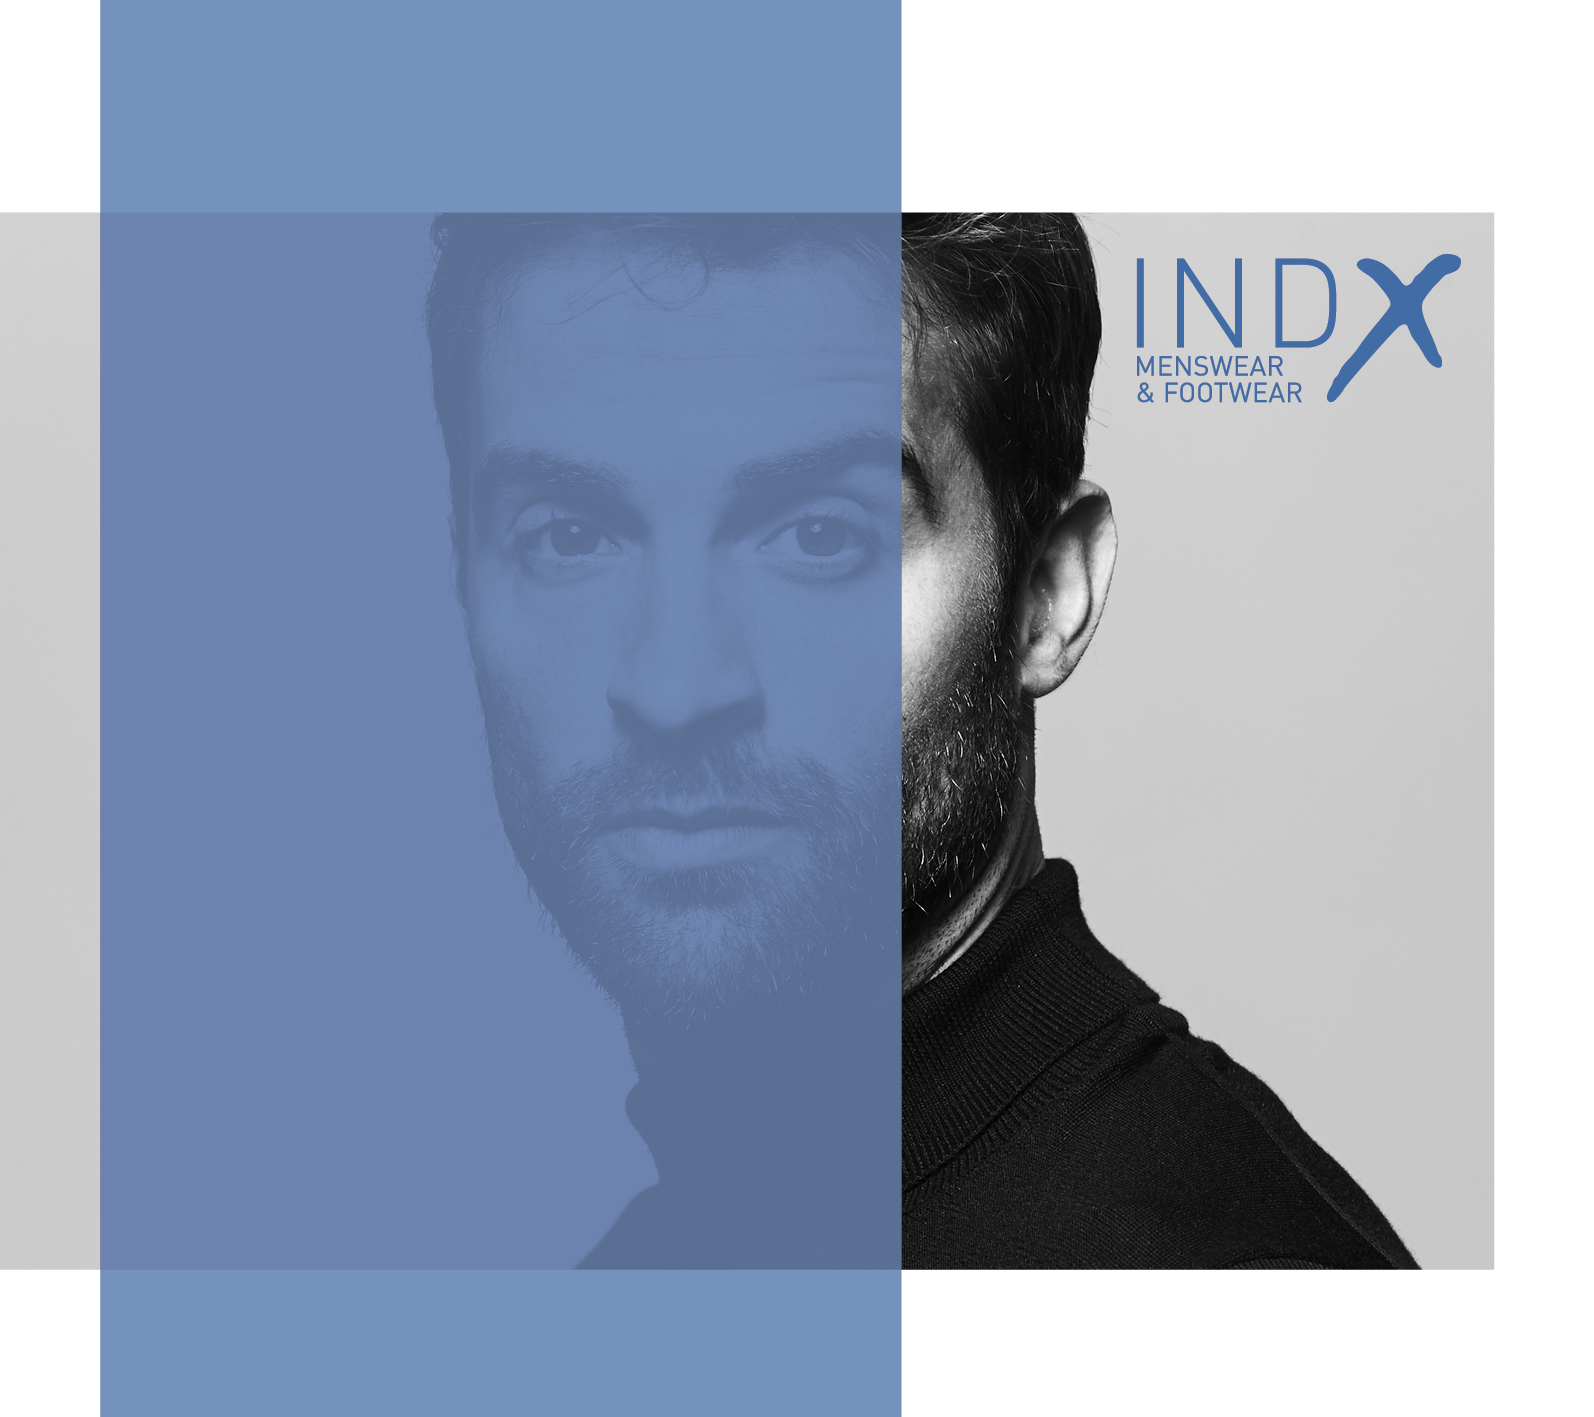 INDX Menswear and Footwear 2020